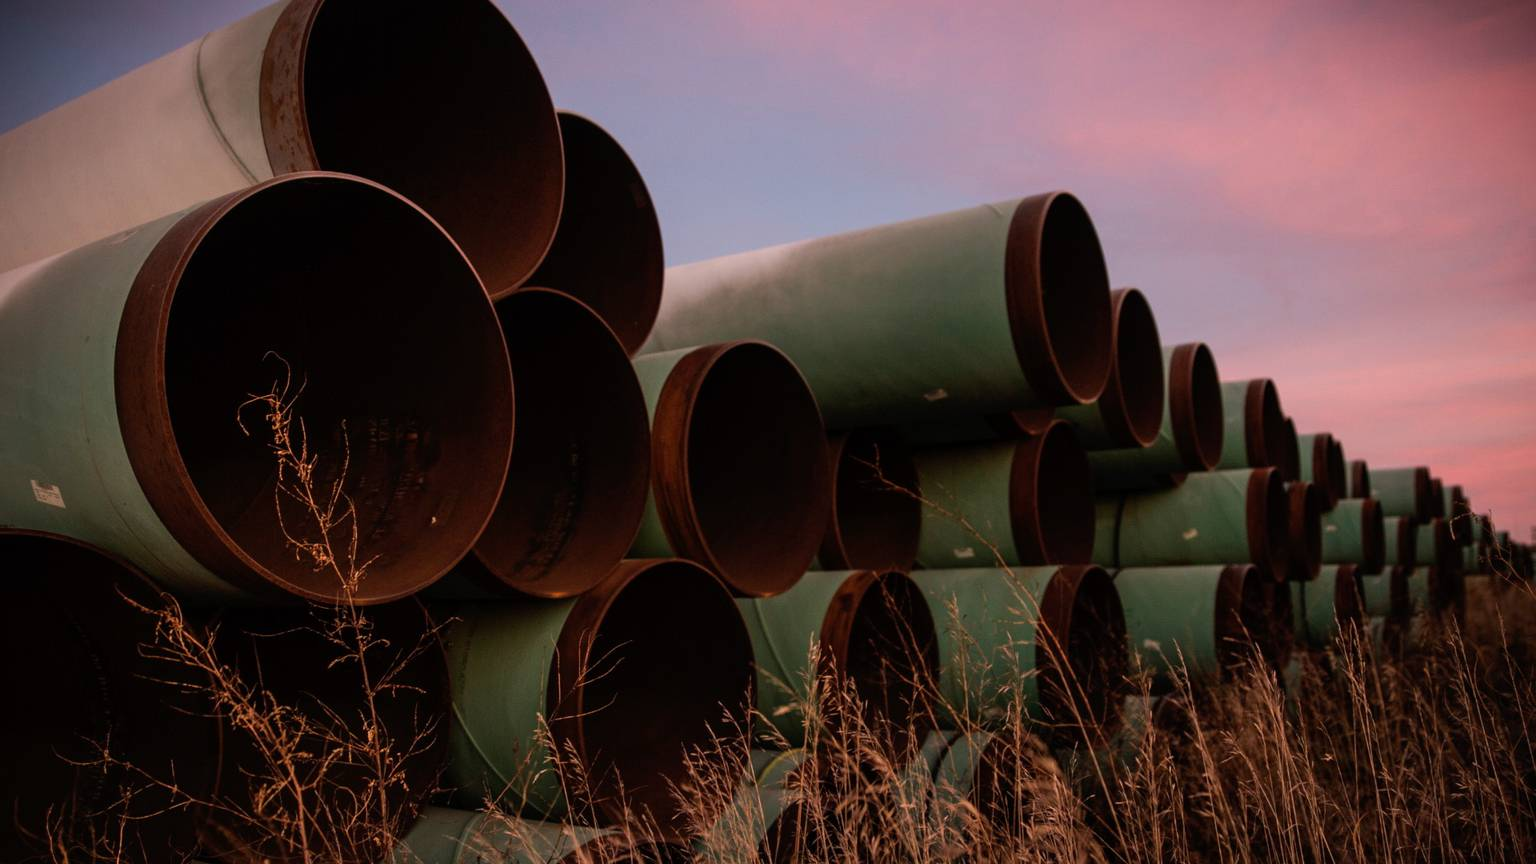 TransCanada submits new application for Keystone pipeline